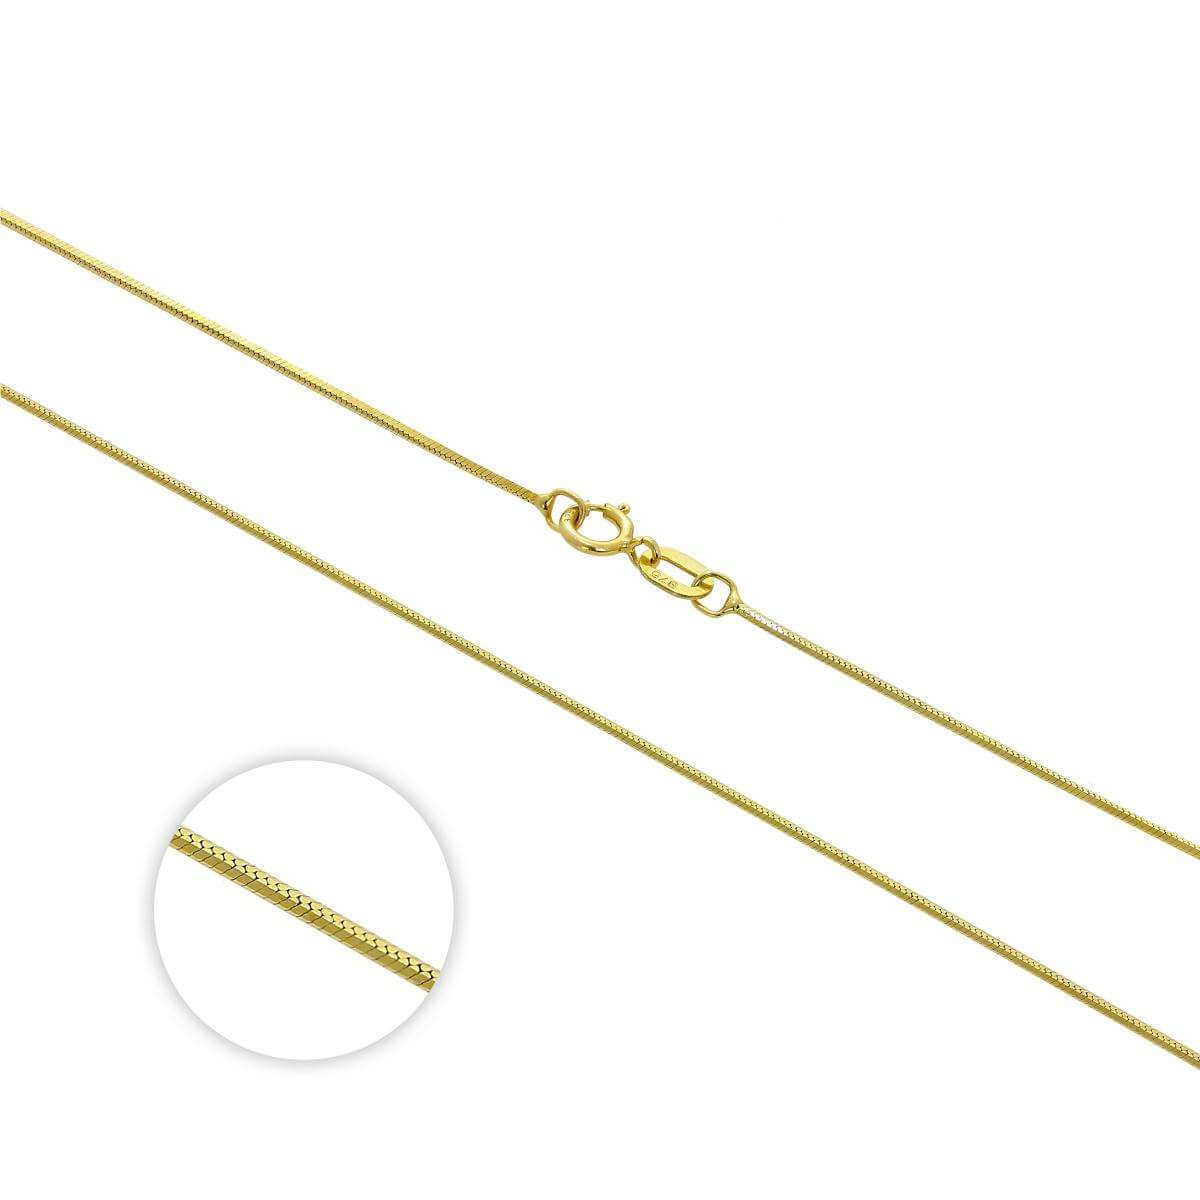 9ct Gold Diamond Cut 1mm Snake Chain 16 - 18 Inches